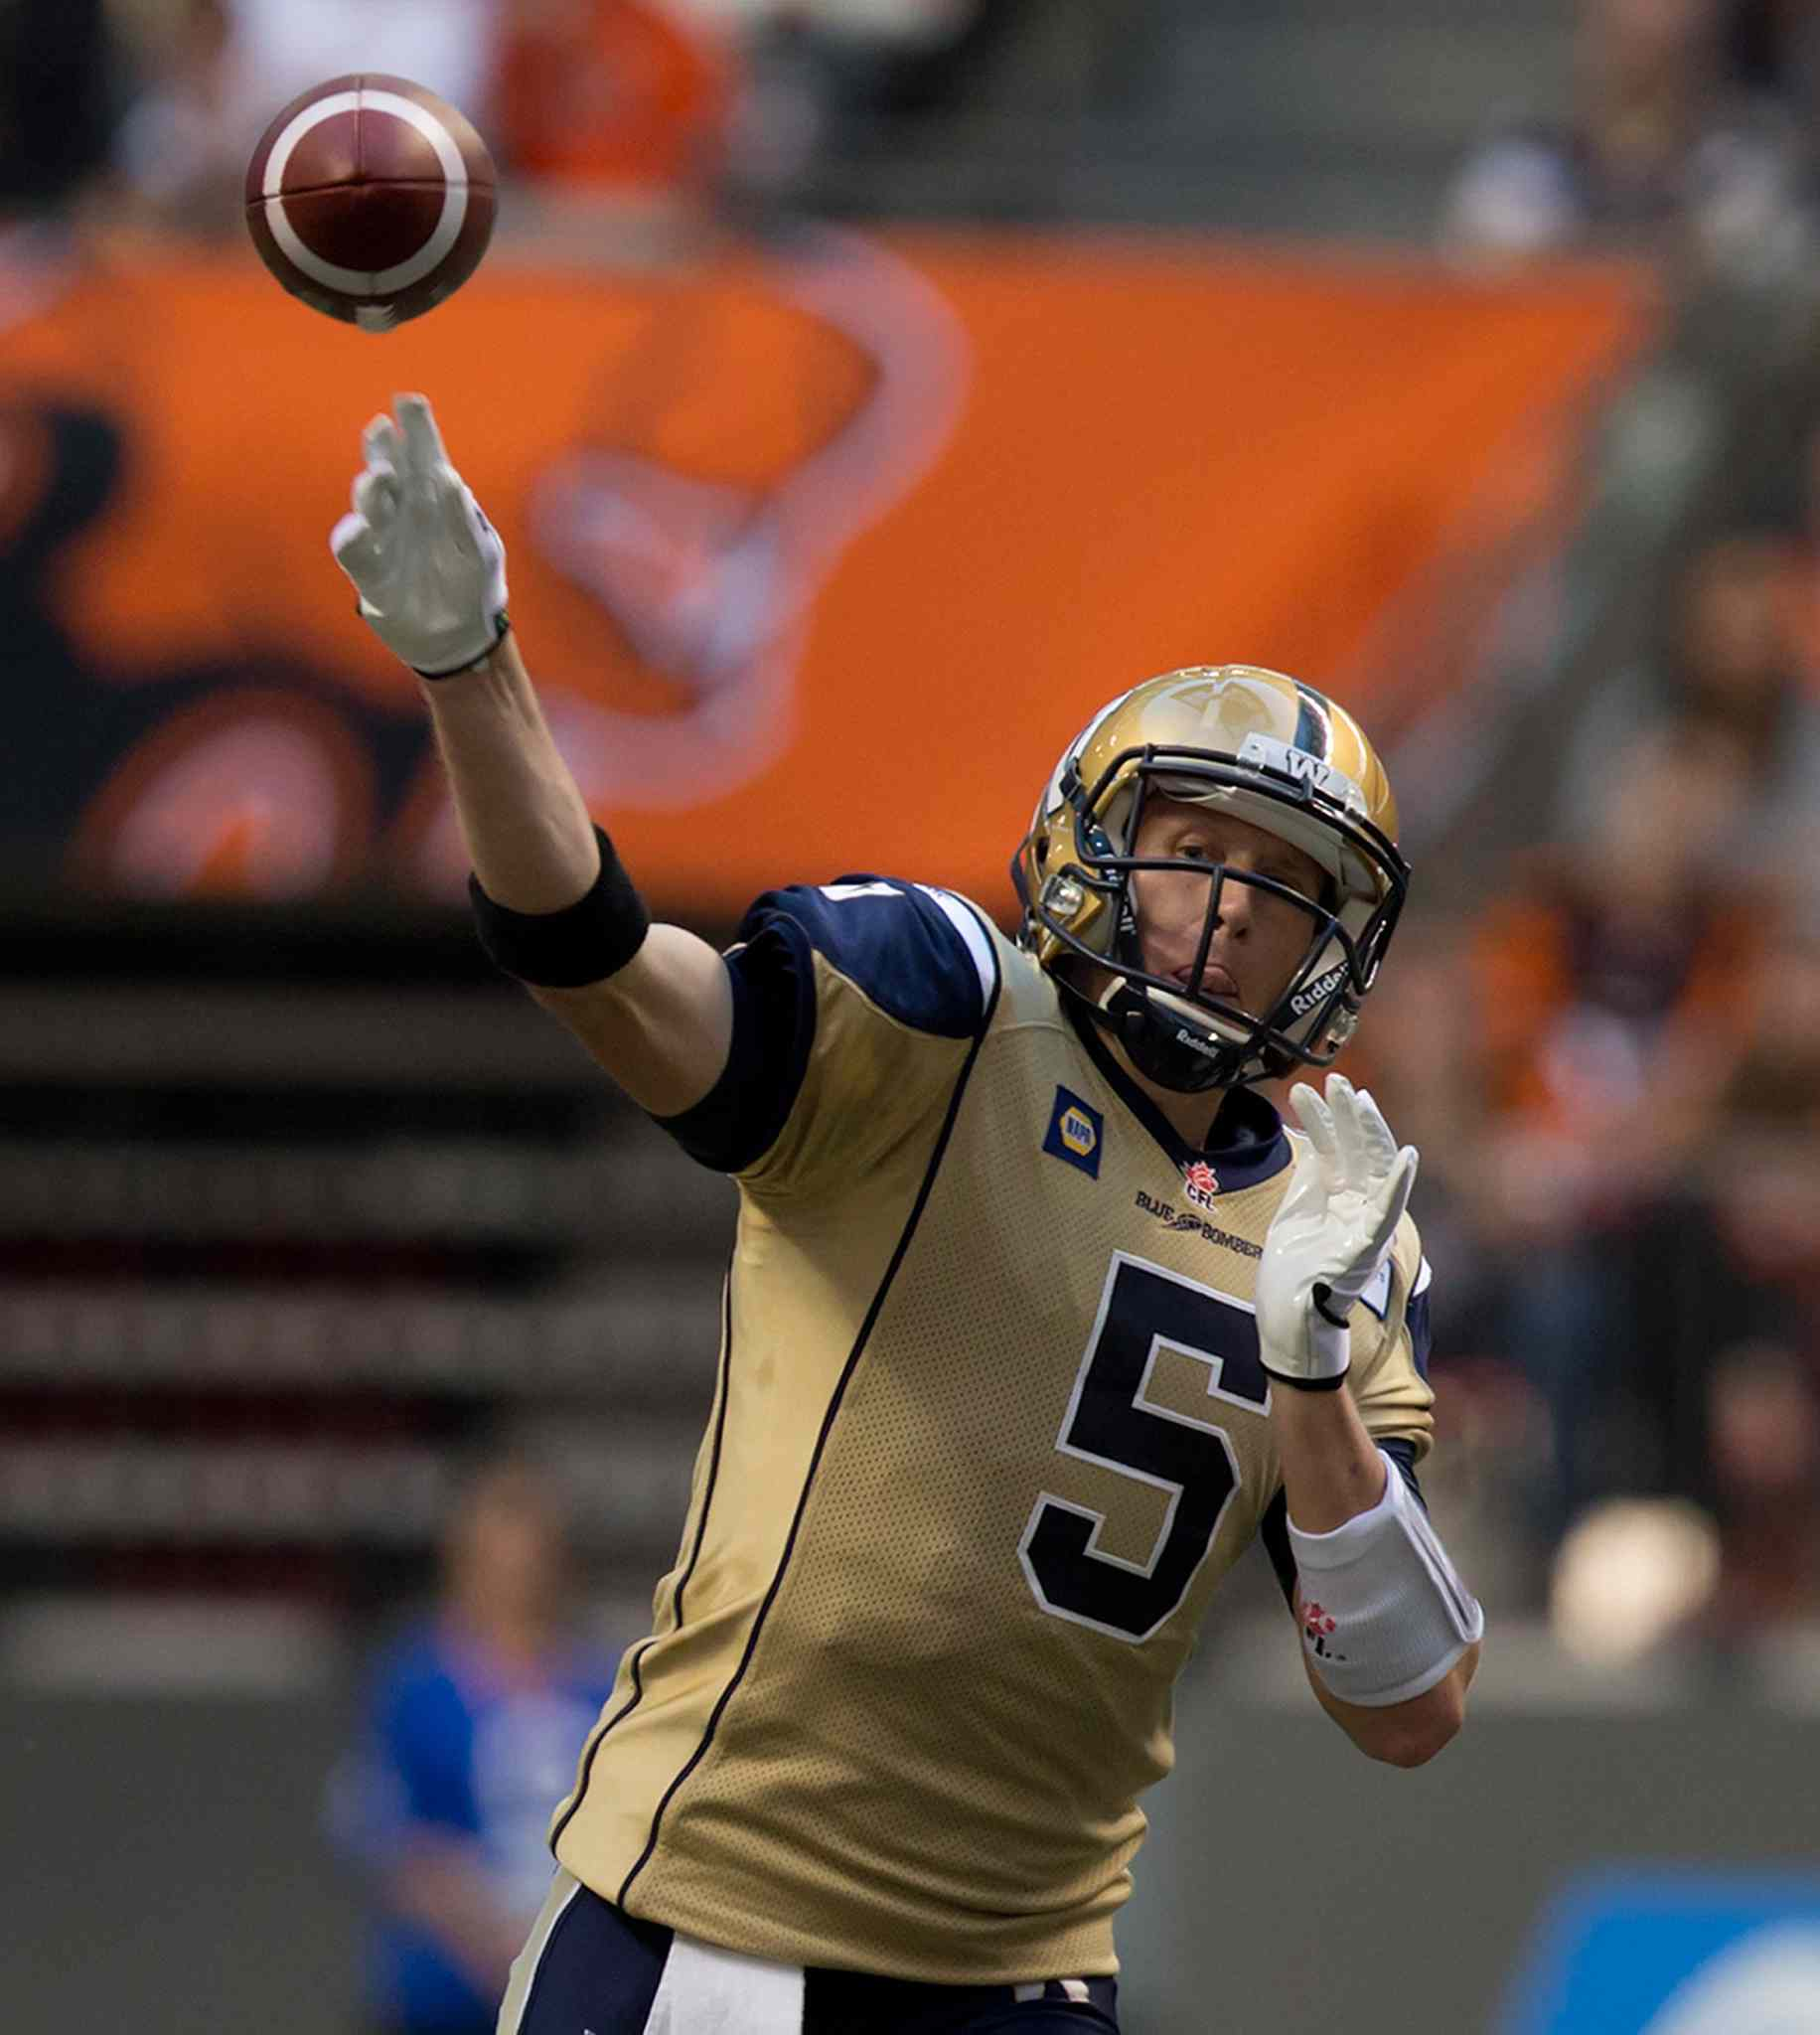 Winnipeg Blue Bombers' quarterback Drew Willy passes against the B.C. Lions during the first half of Friday's game.